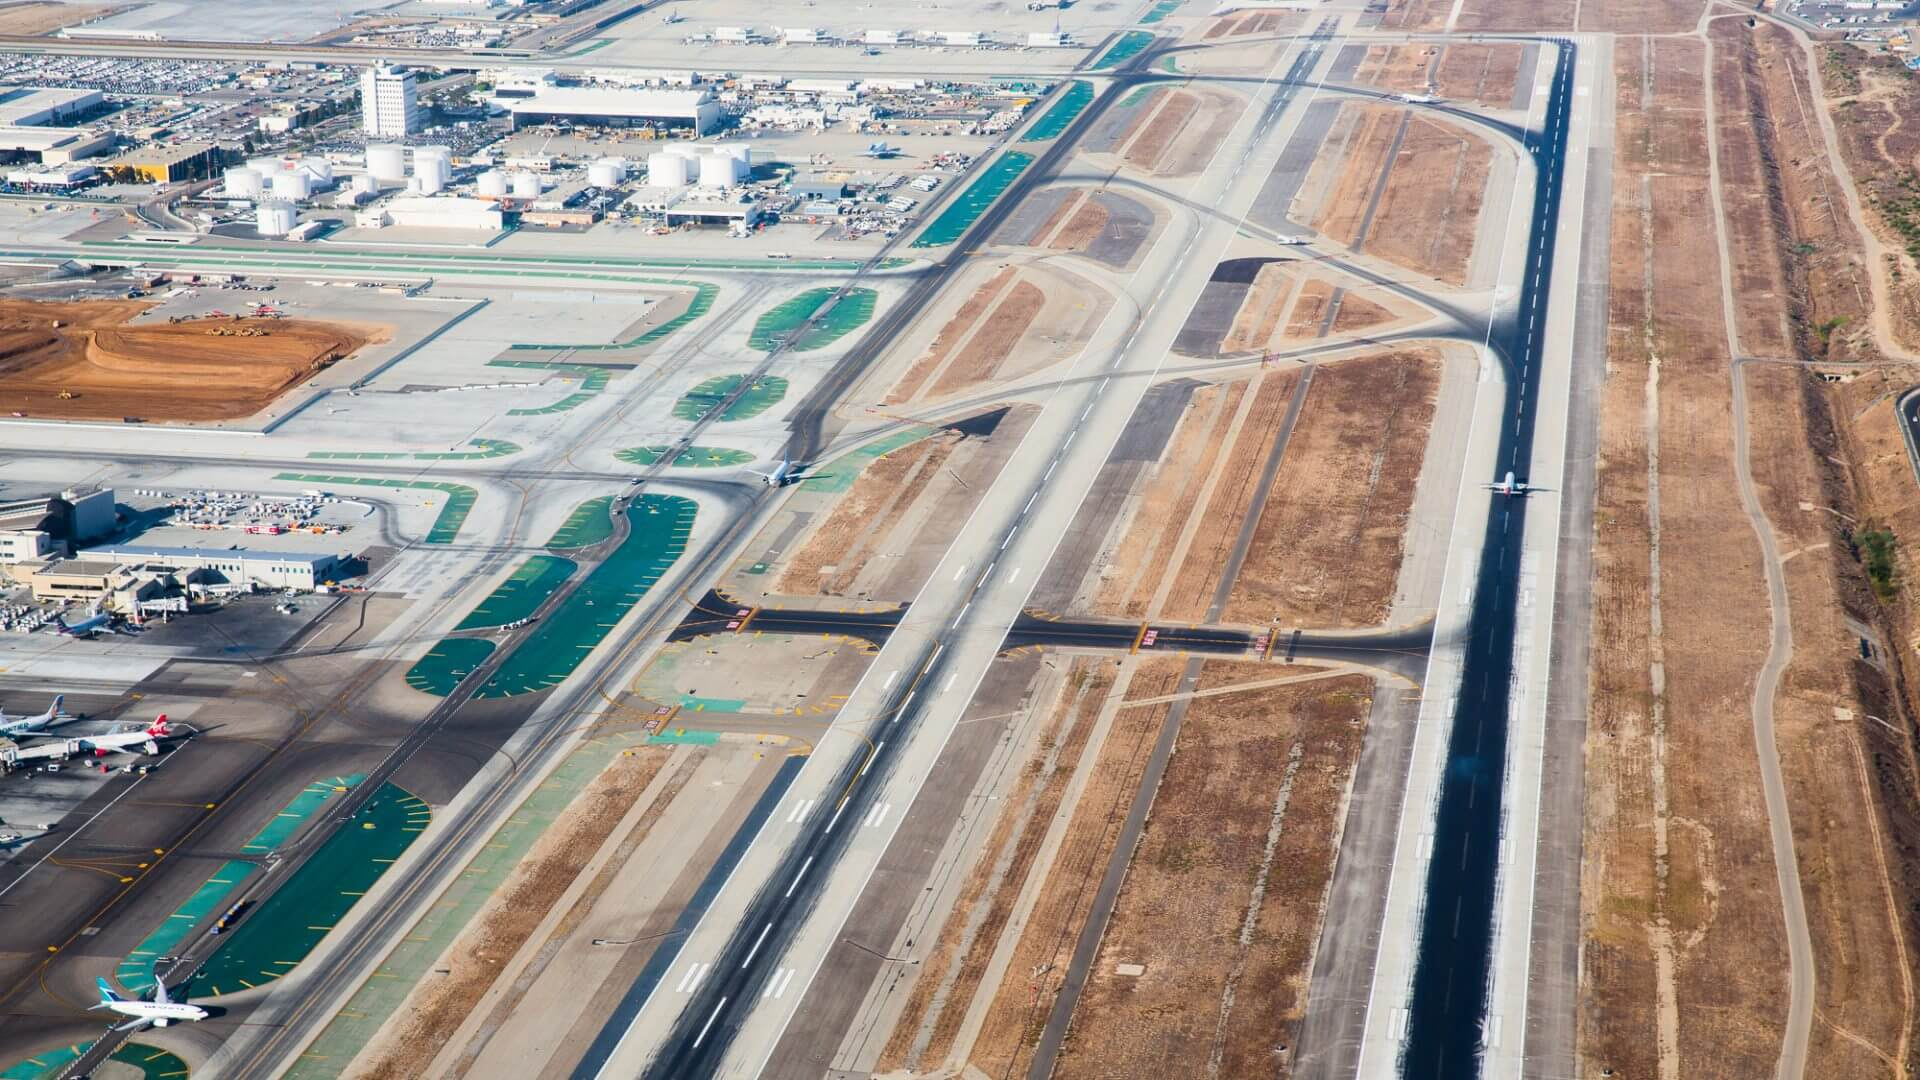 AECOM's LAX project